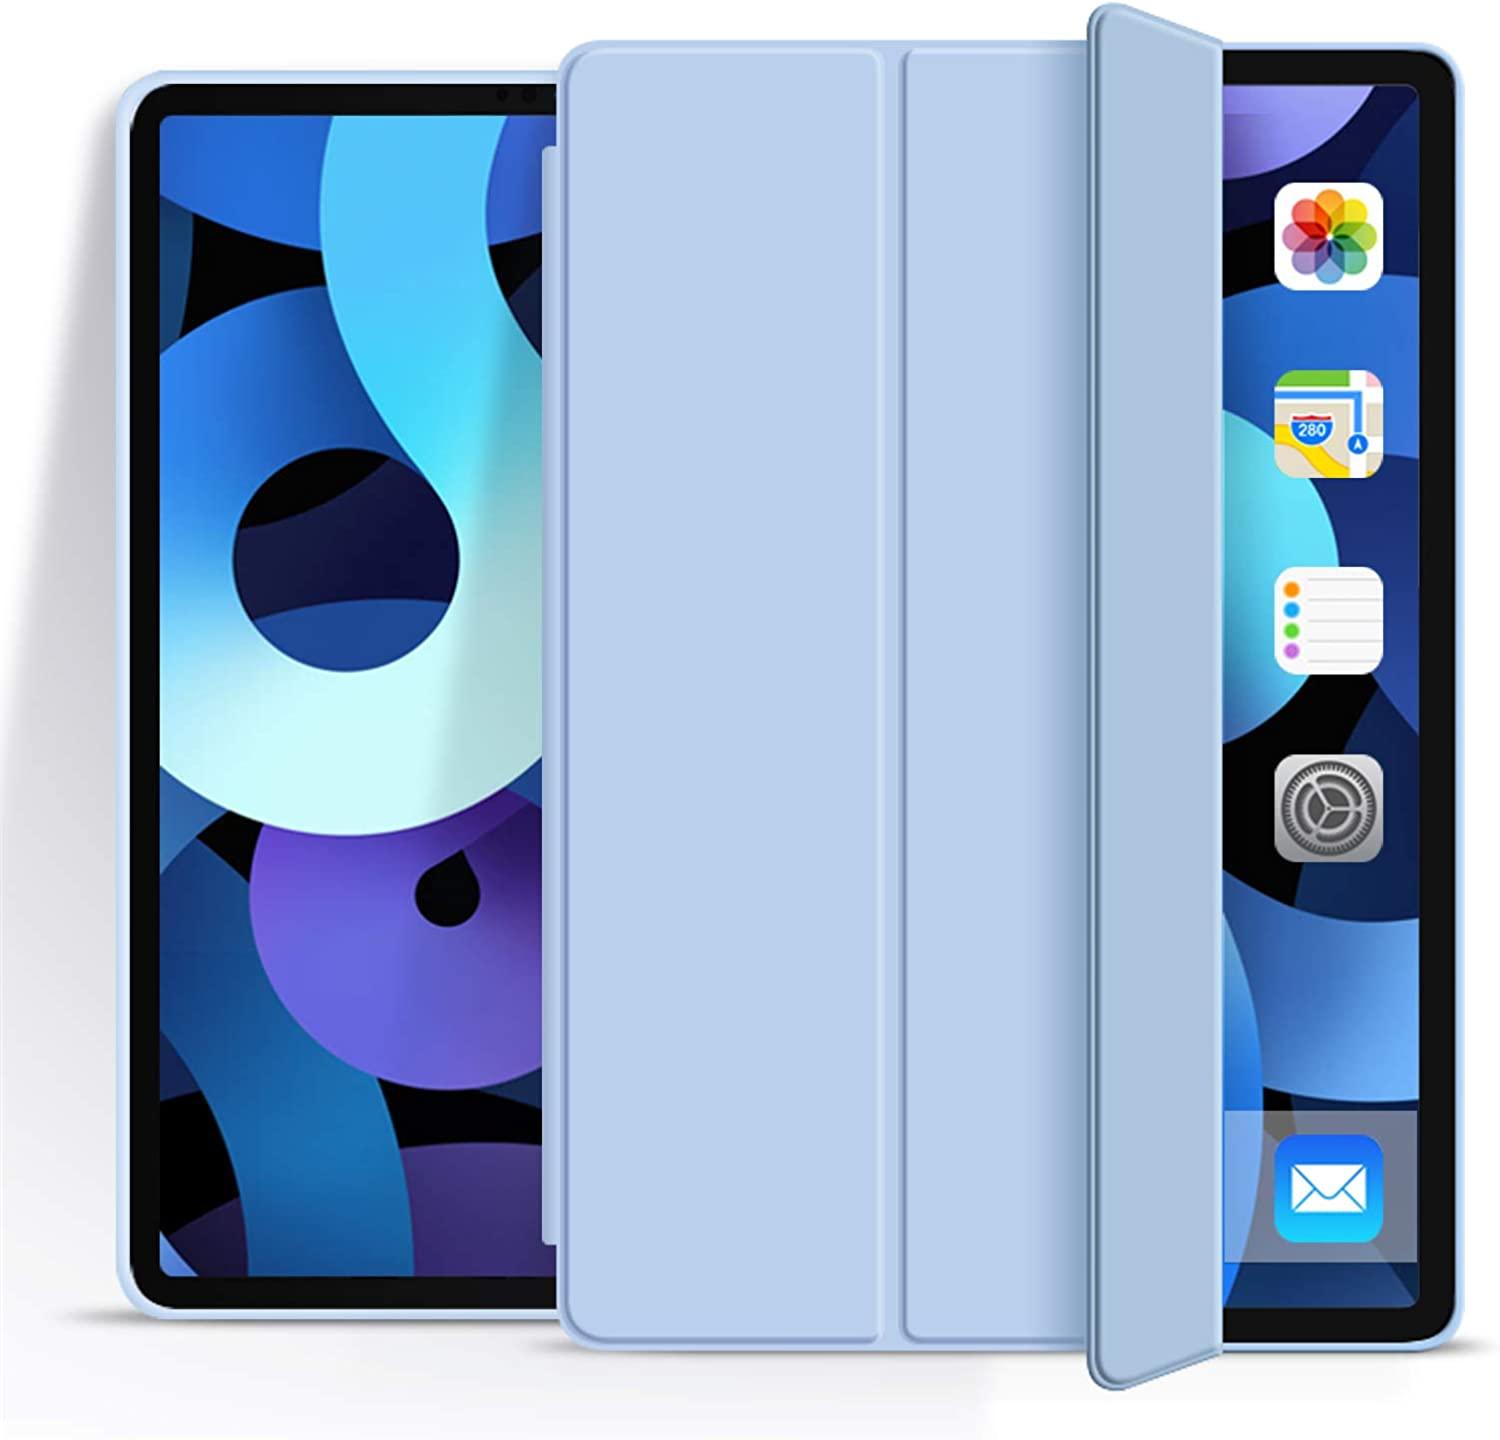 Aoub Case for iPad Pro 11 2021, Ultra Slim Lightweight Trifold Stand Smart Auto Sleep/Wake Cover, Soft TPU Silicone Back Case for iPad Pro 3rd Generation 11 inch, Sky Blue